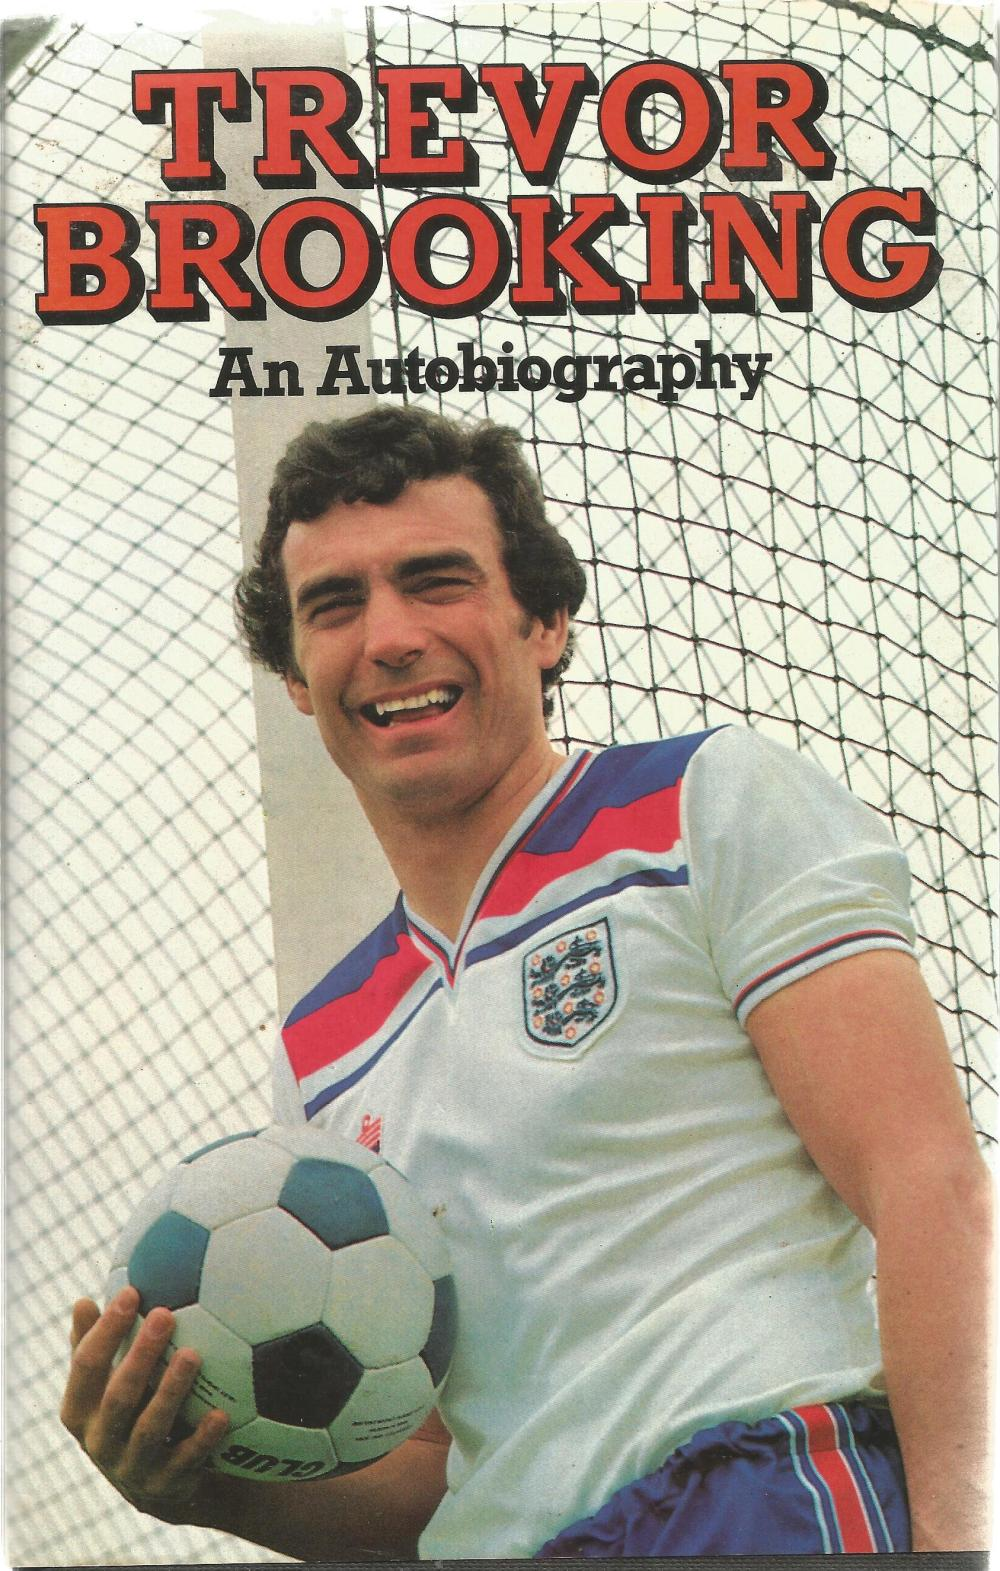 Trevor Brooking Hardback Book An Autobiography 1981 signed by the Author on the Title Page and dated